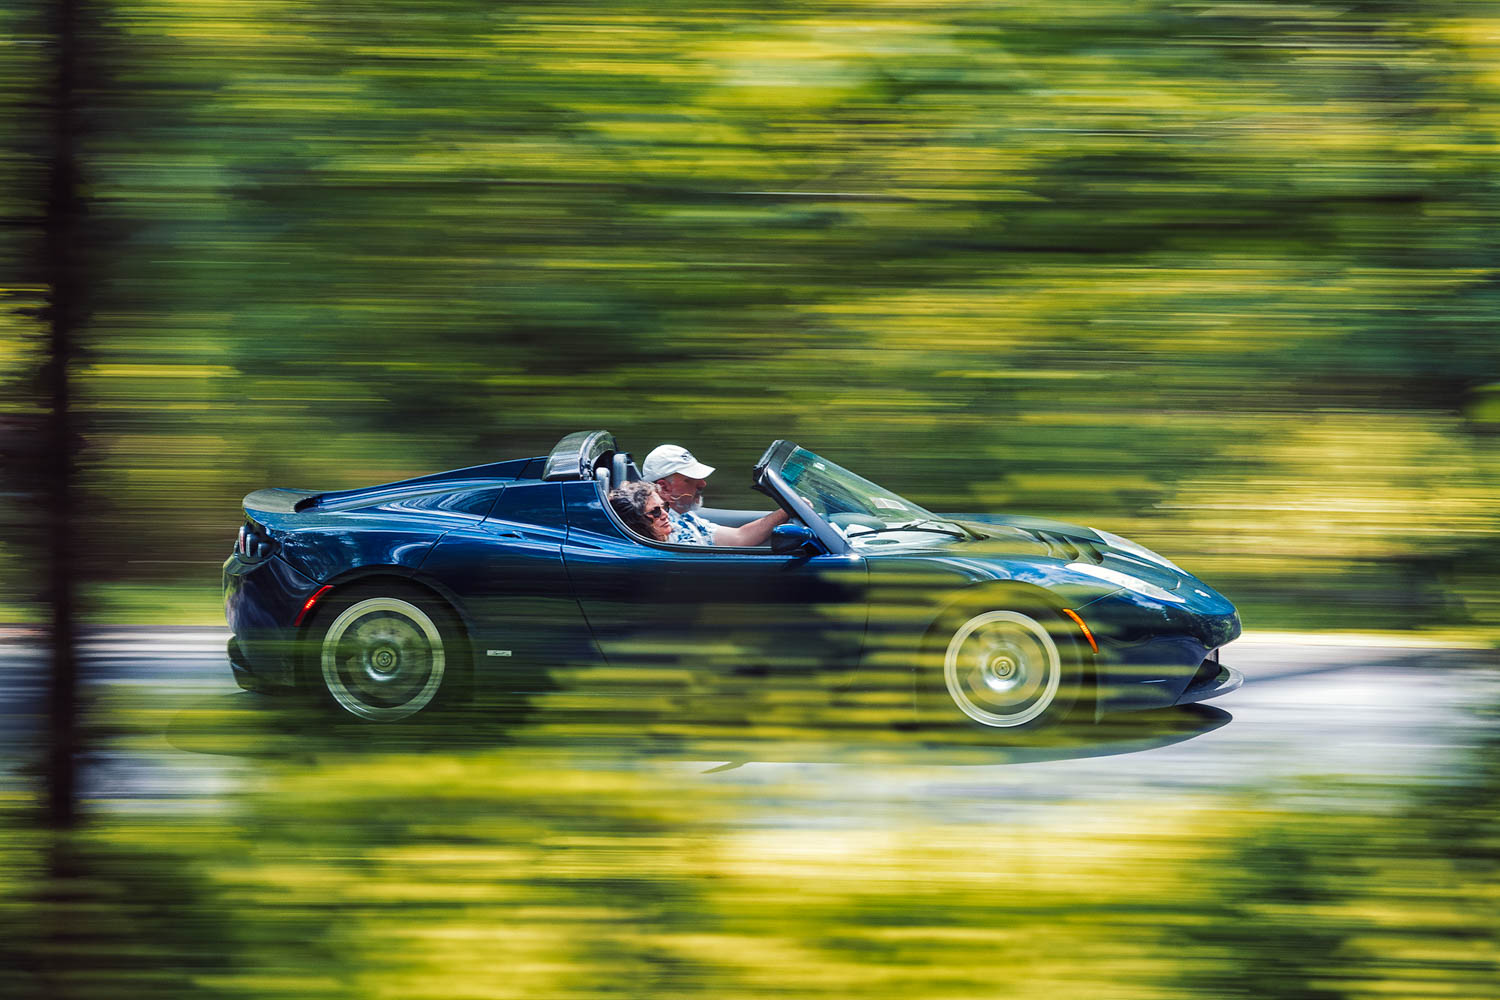 """If there is an antithesis to Chapman's """"simplify, then add lightness"""" mantra among our test cars, it is the Tesla, with its electric motor and heavy batteries. Yet the package still evokes all the cutting-edge charm of the Elise, on which it's based."""